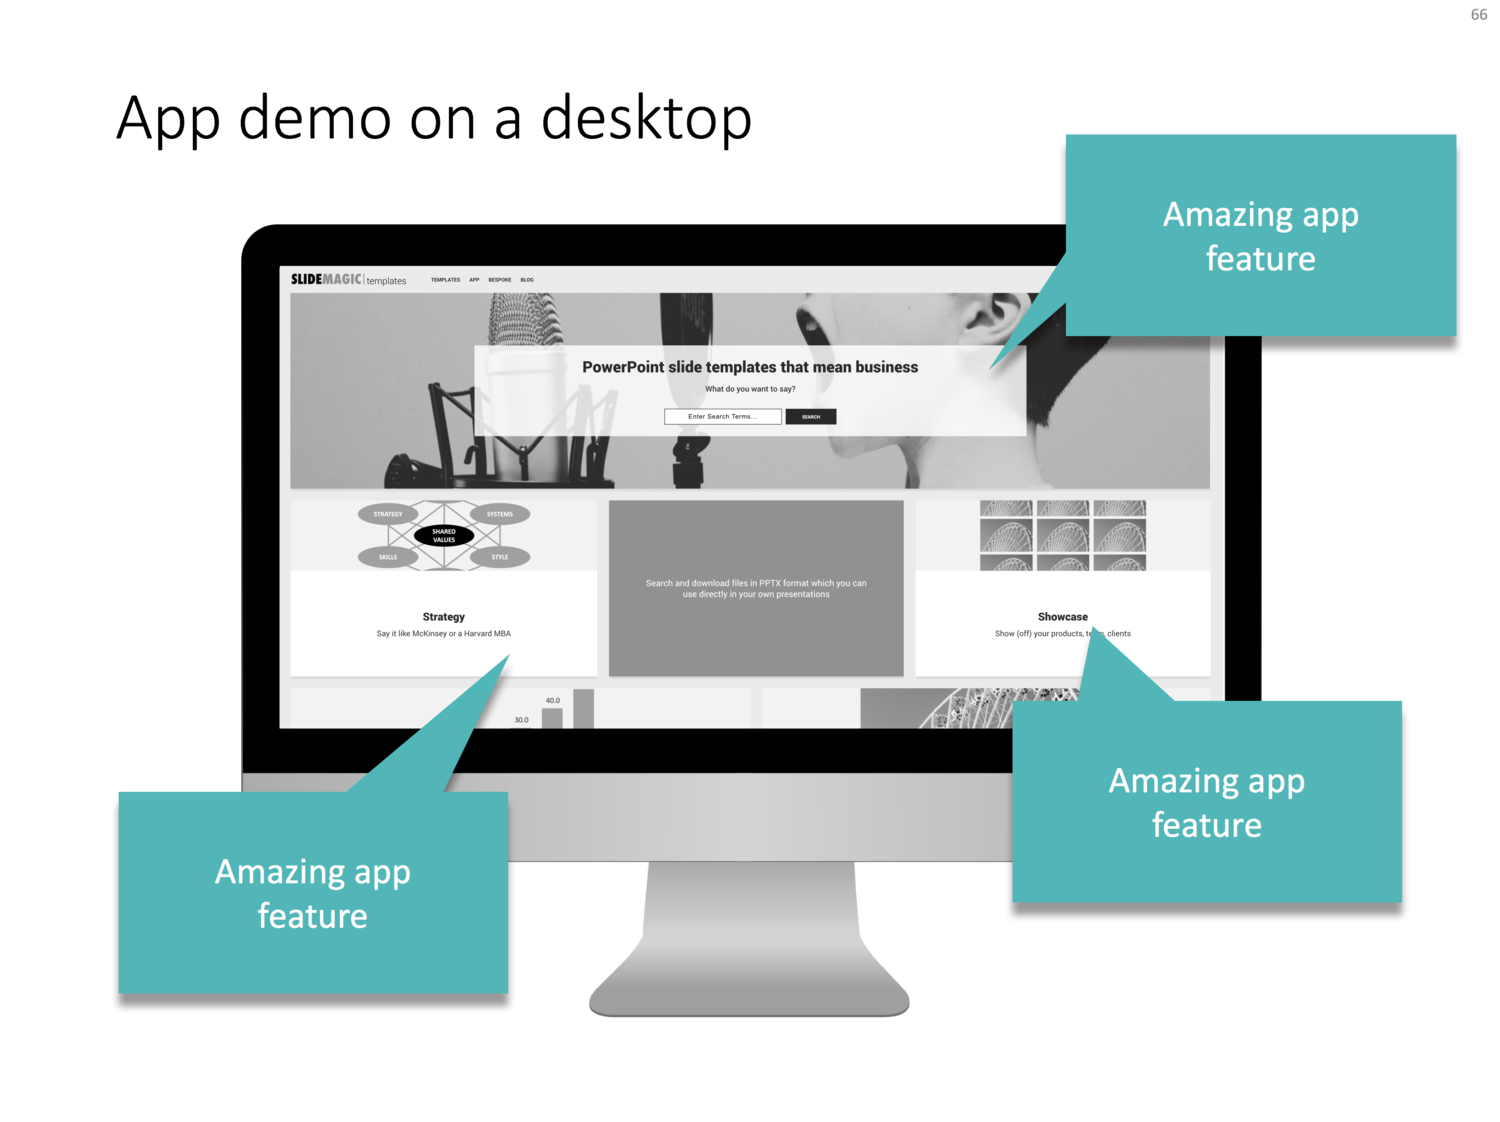 App demo slides — PowerPoint templates and presentation design services